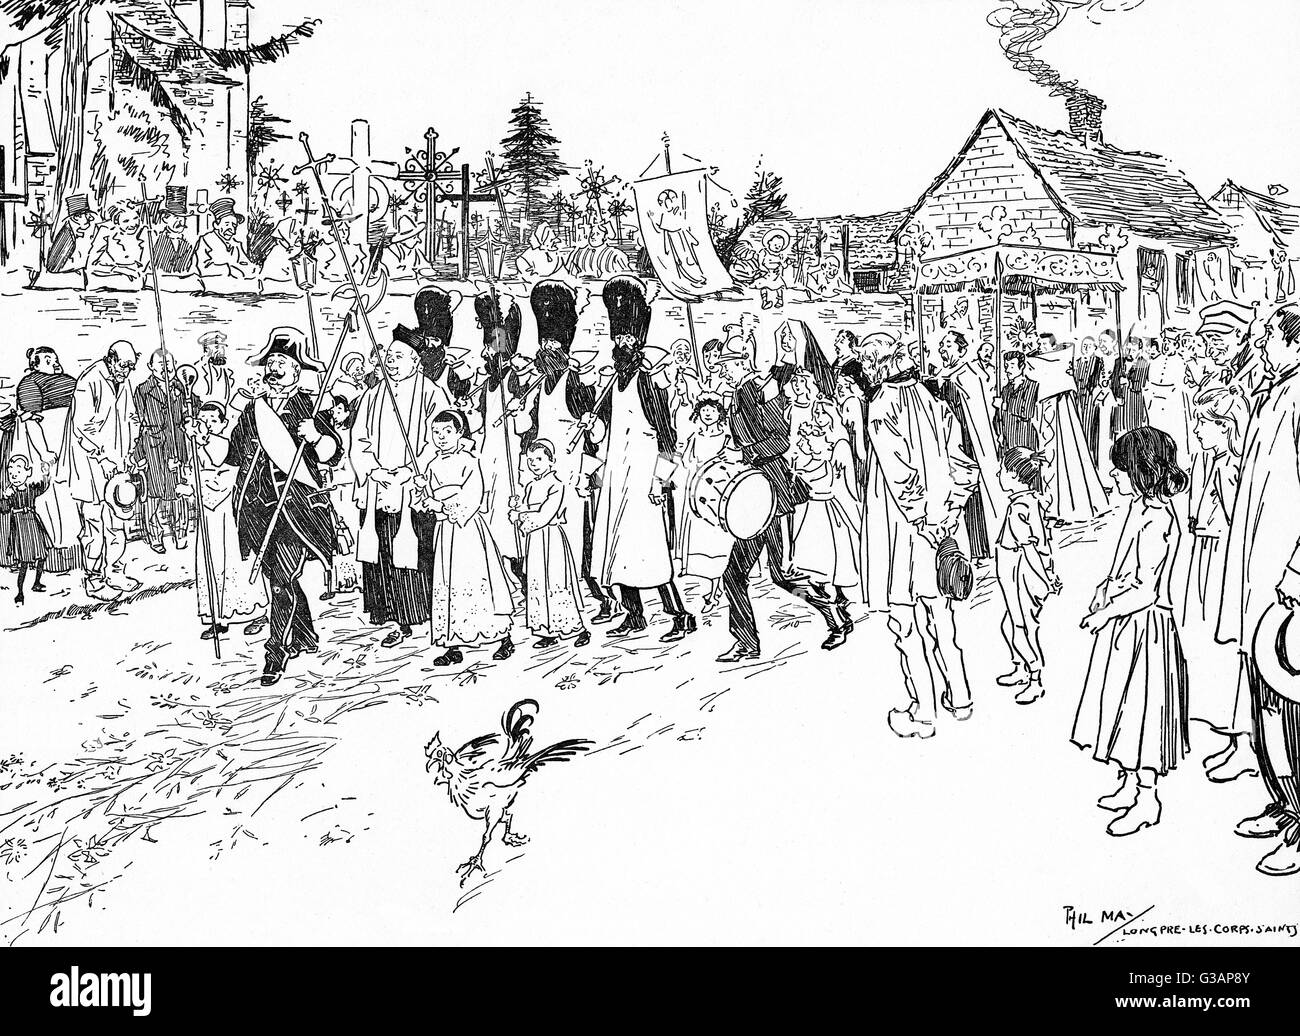 A Procession in Picardy - delightful study of a religious parade of relics passing at Longpr魬es-Corps-Saints, Stock Photo